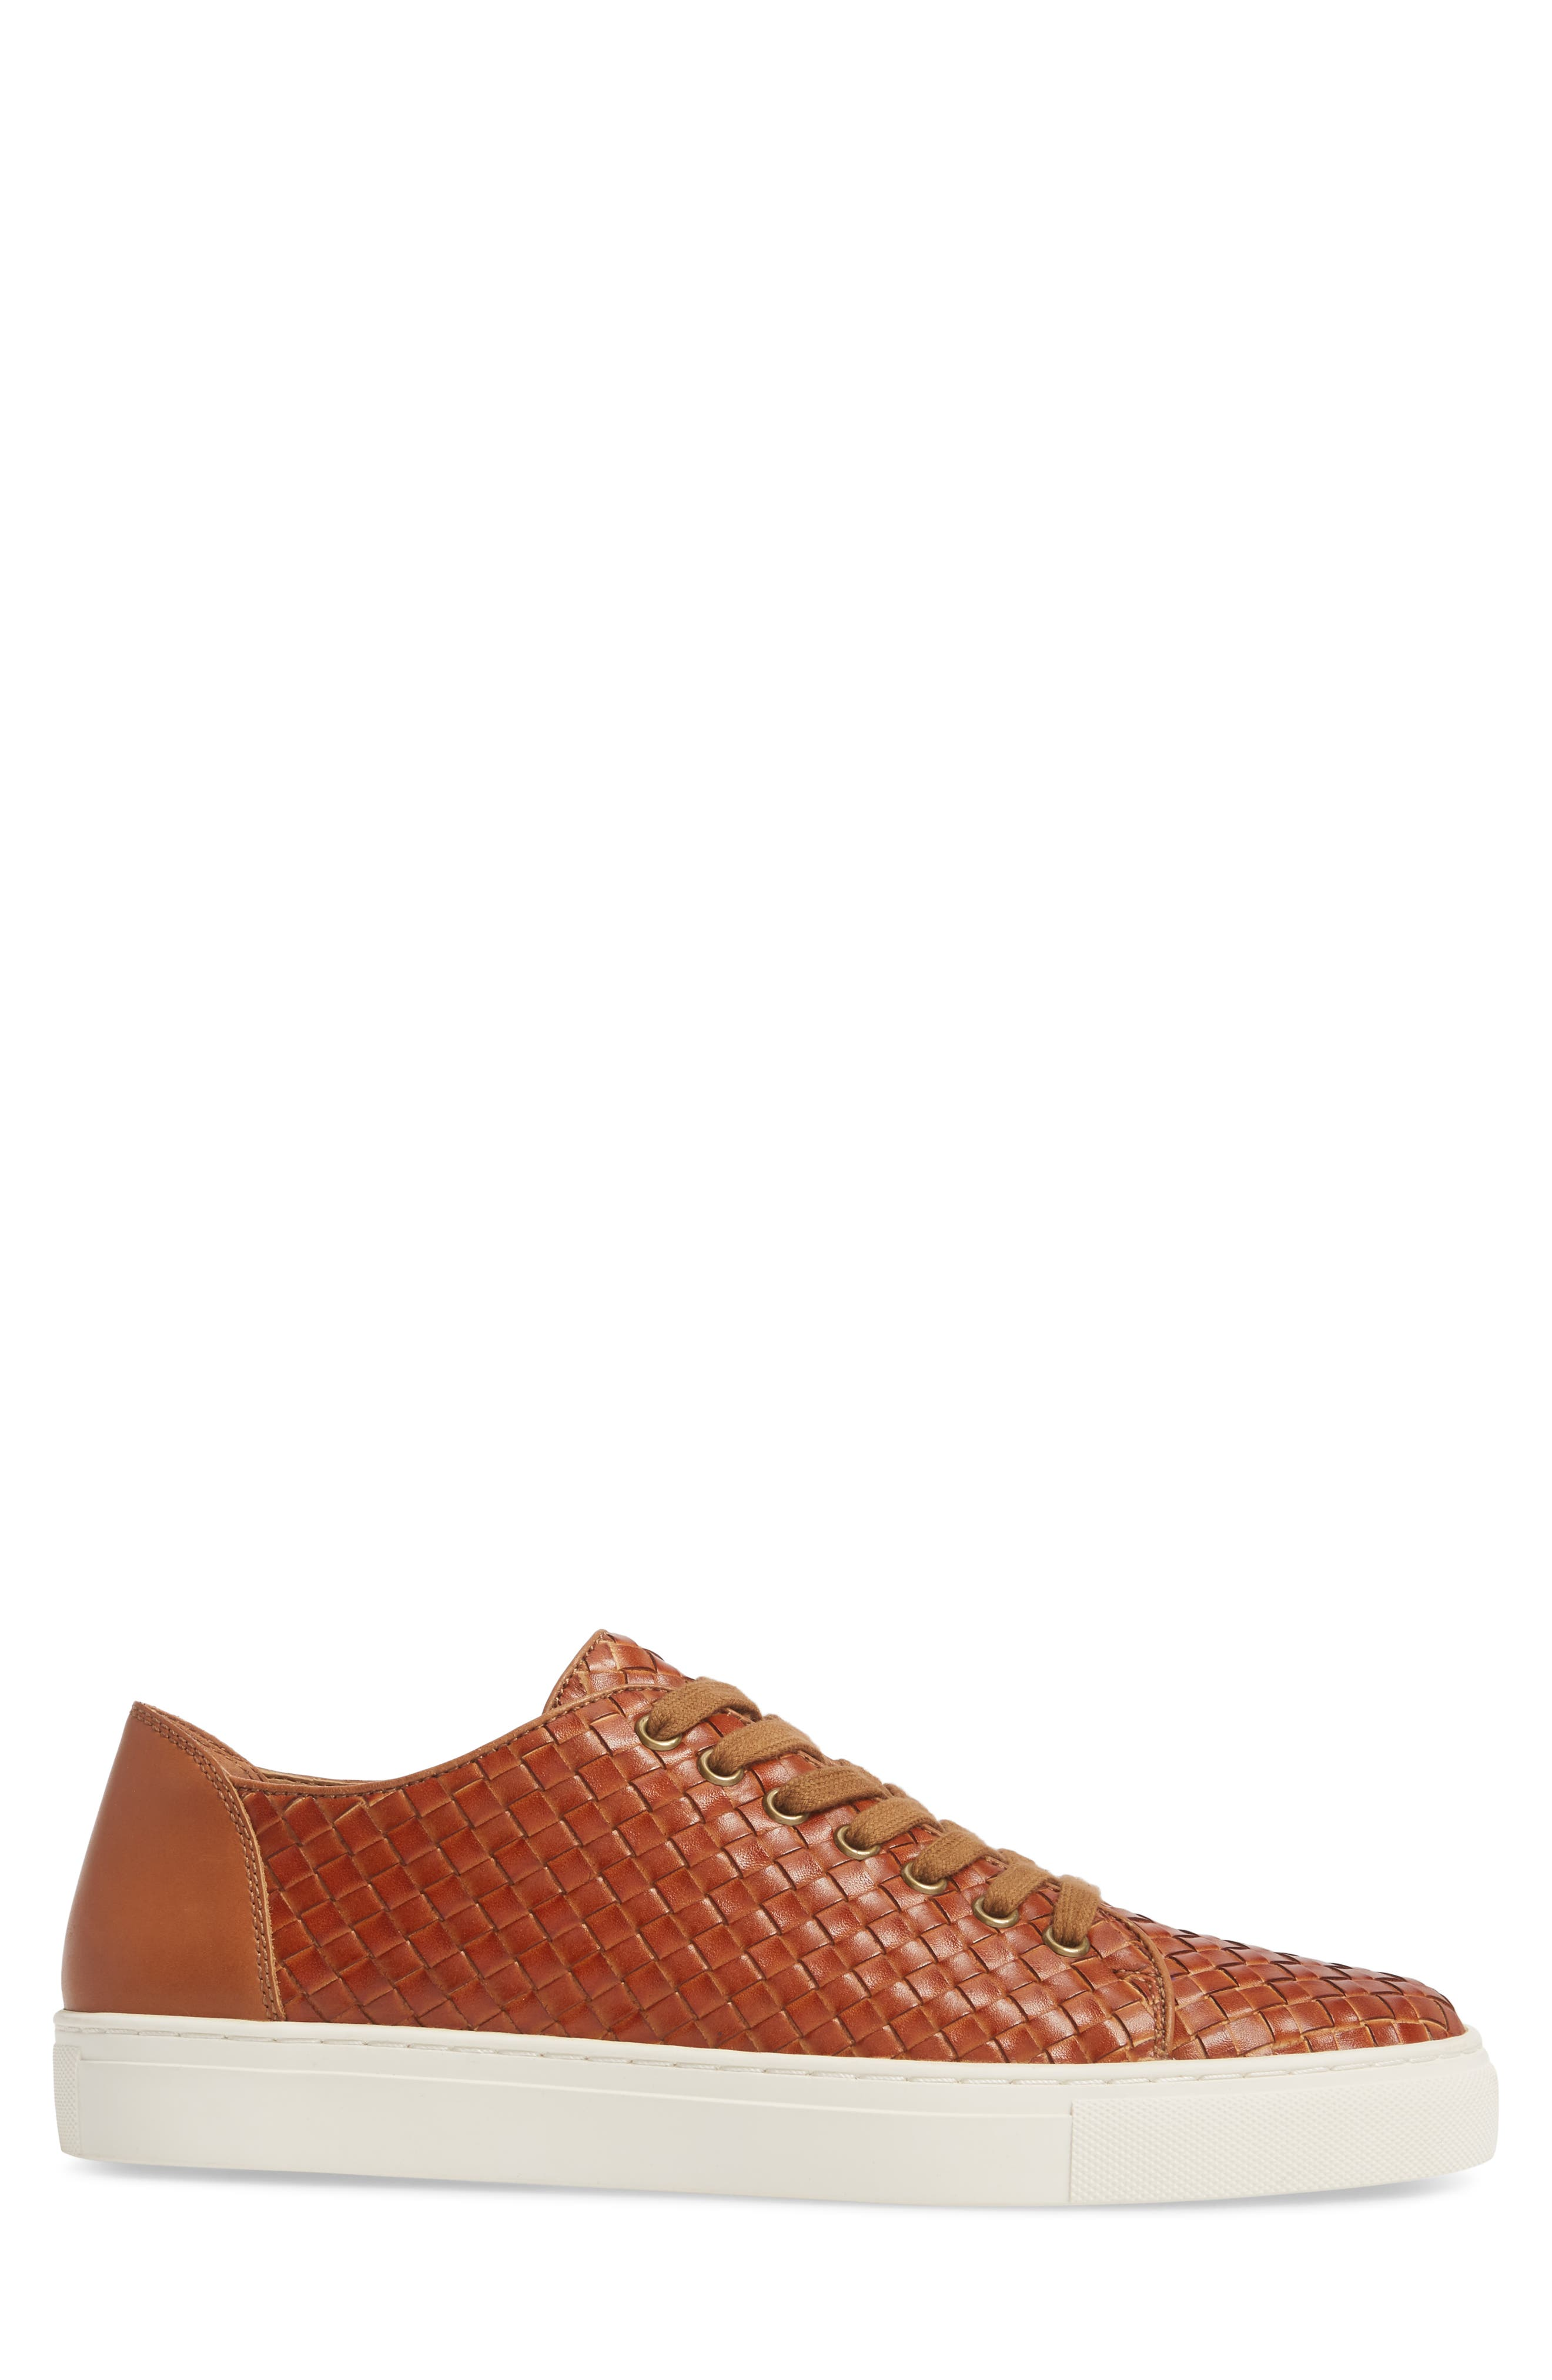 Alto Woven Low Top Sneaker,                             Alternate thumbnail 3, color,                             Saddle Leather